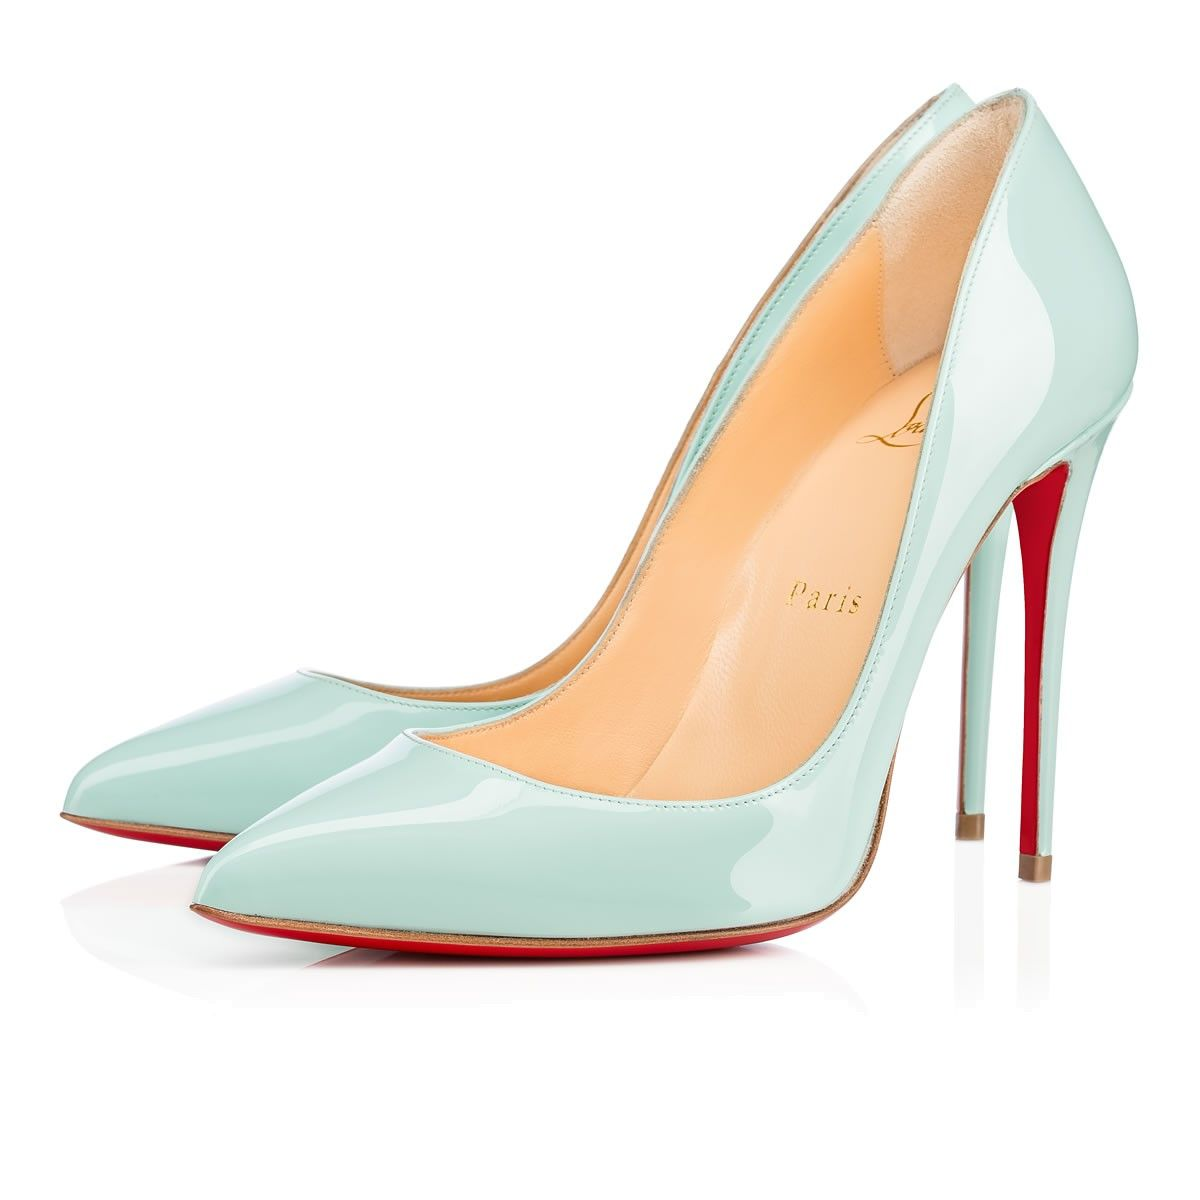 7e4b05ab1467 Pigalle Follies 100 Silver Specchio Leather - Women Shoes - Christian  Louboutin